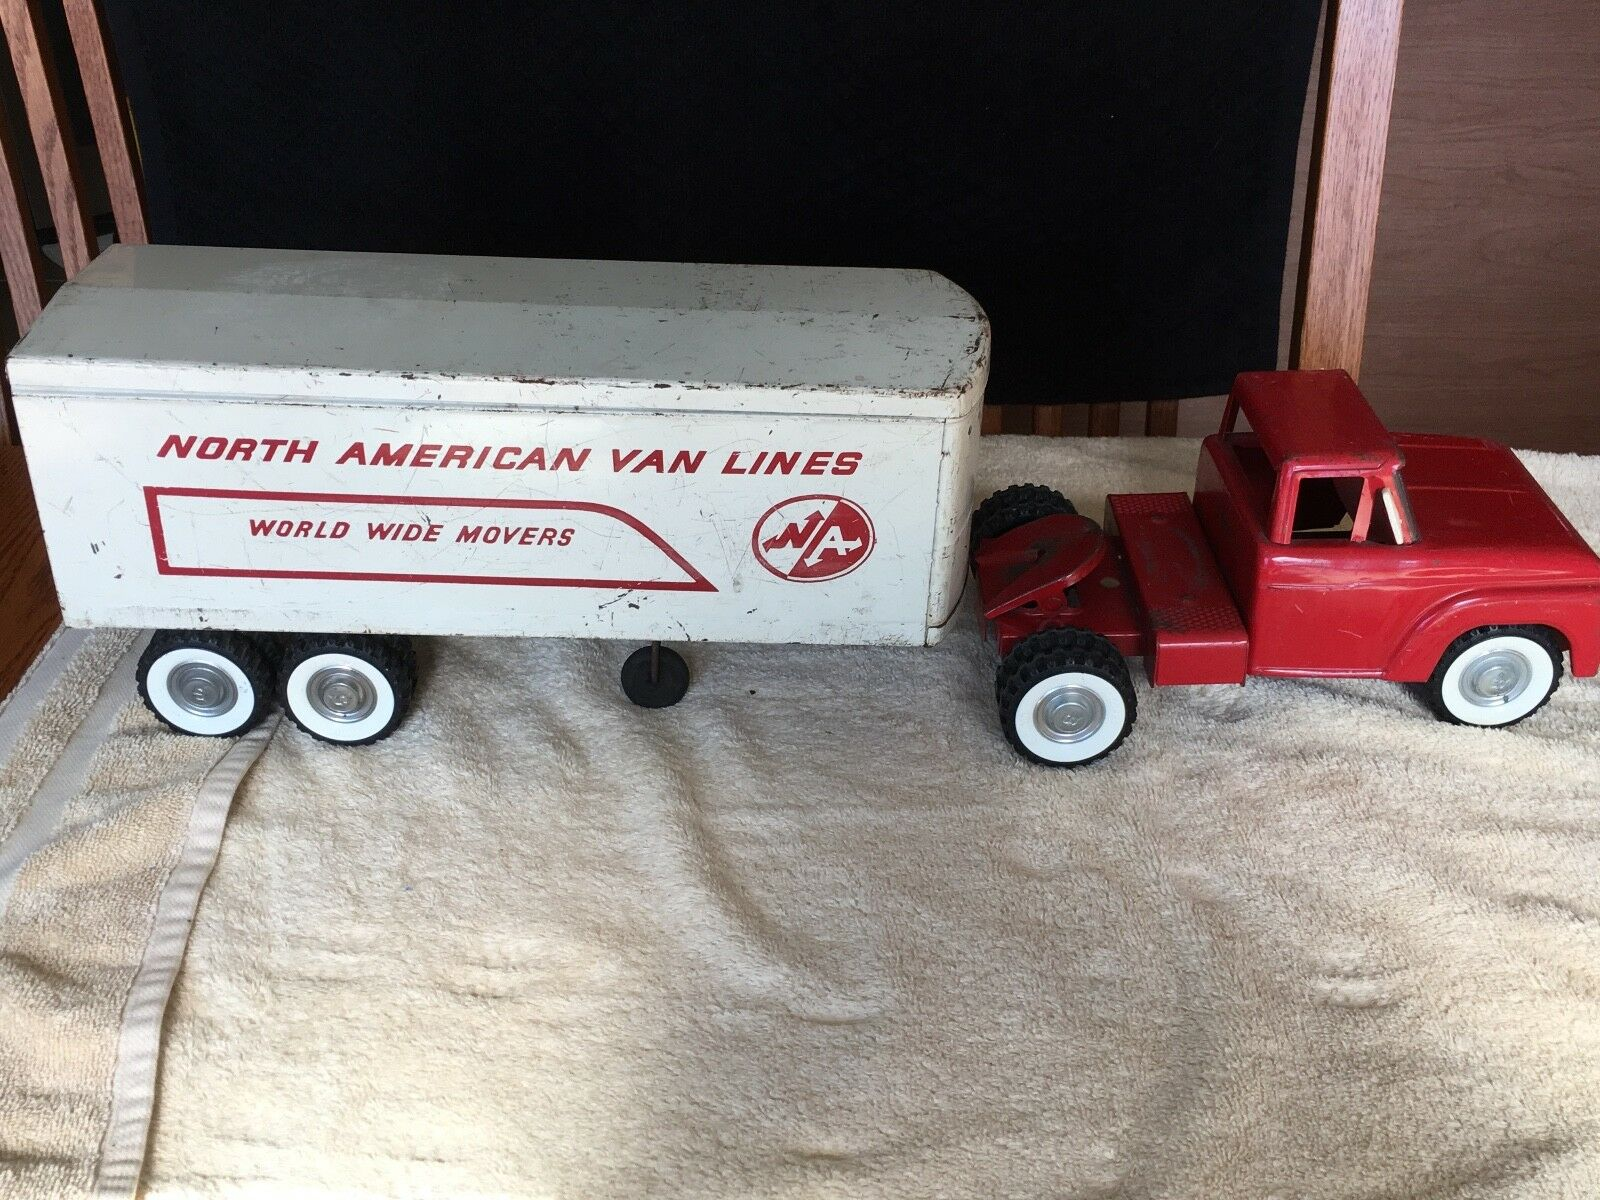 Structo Moving Van - North American Van Lines - World Wide Movers - Red & White.